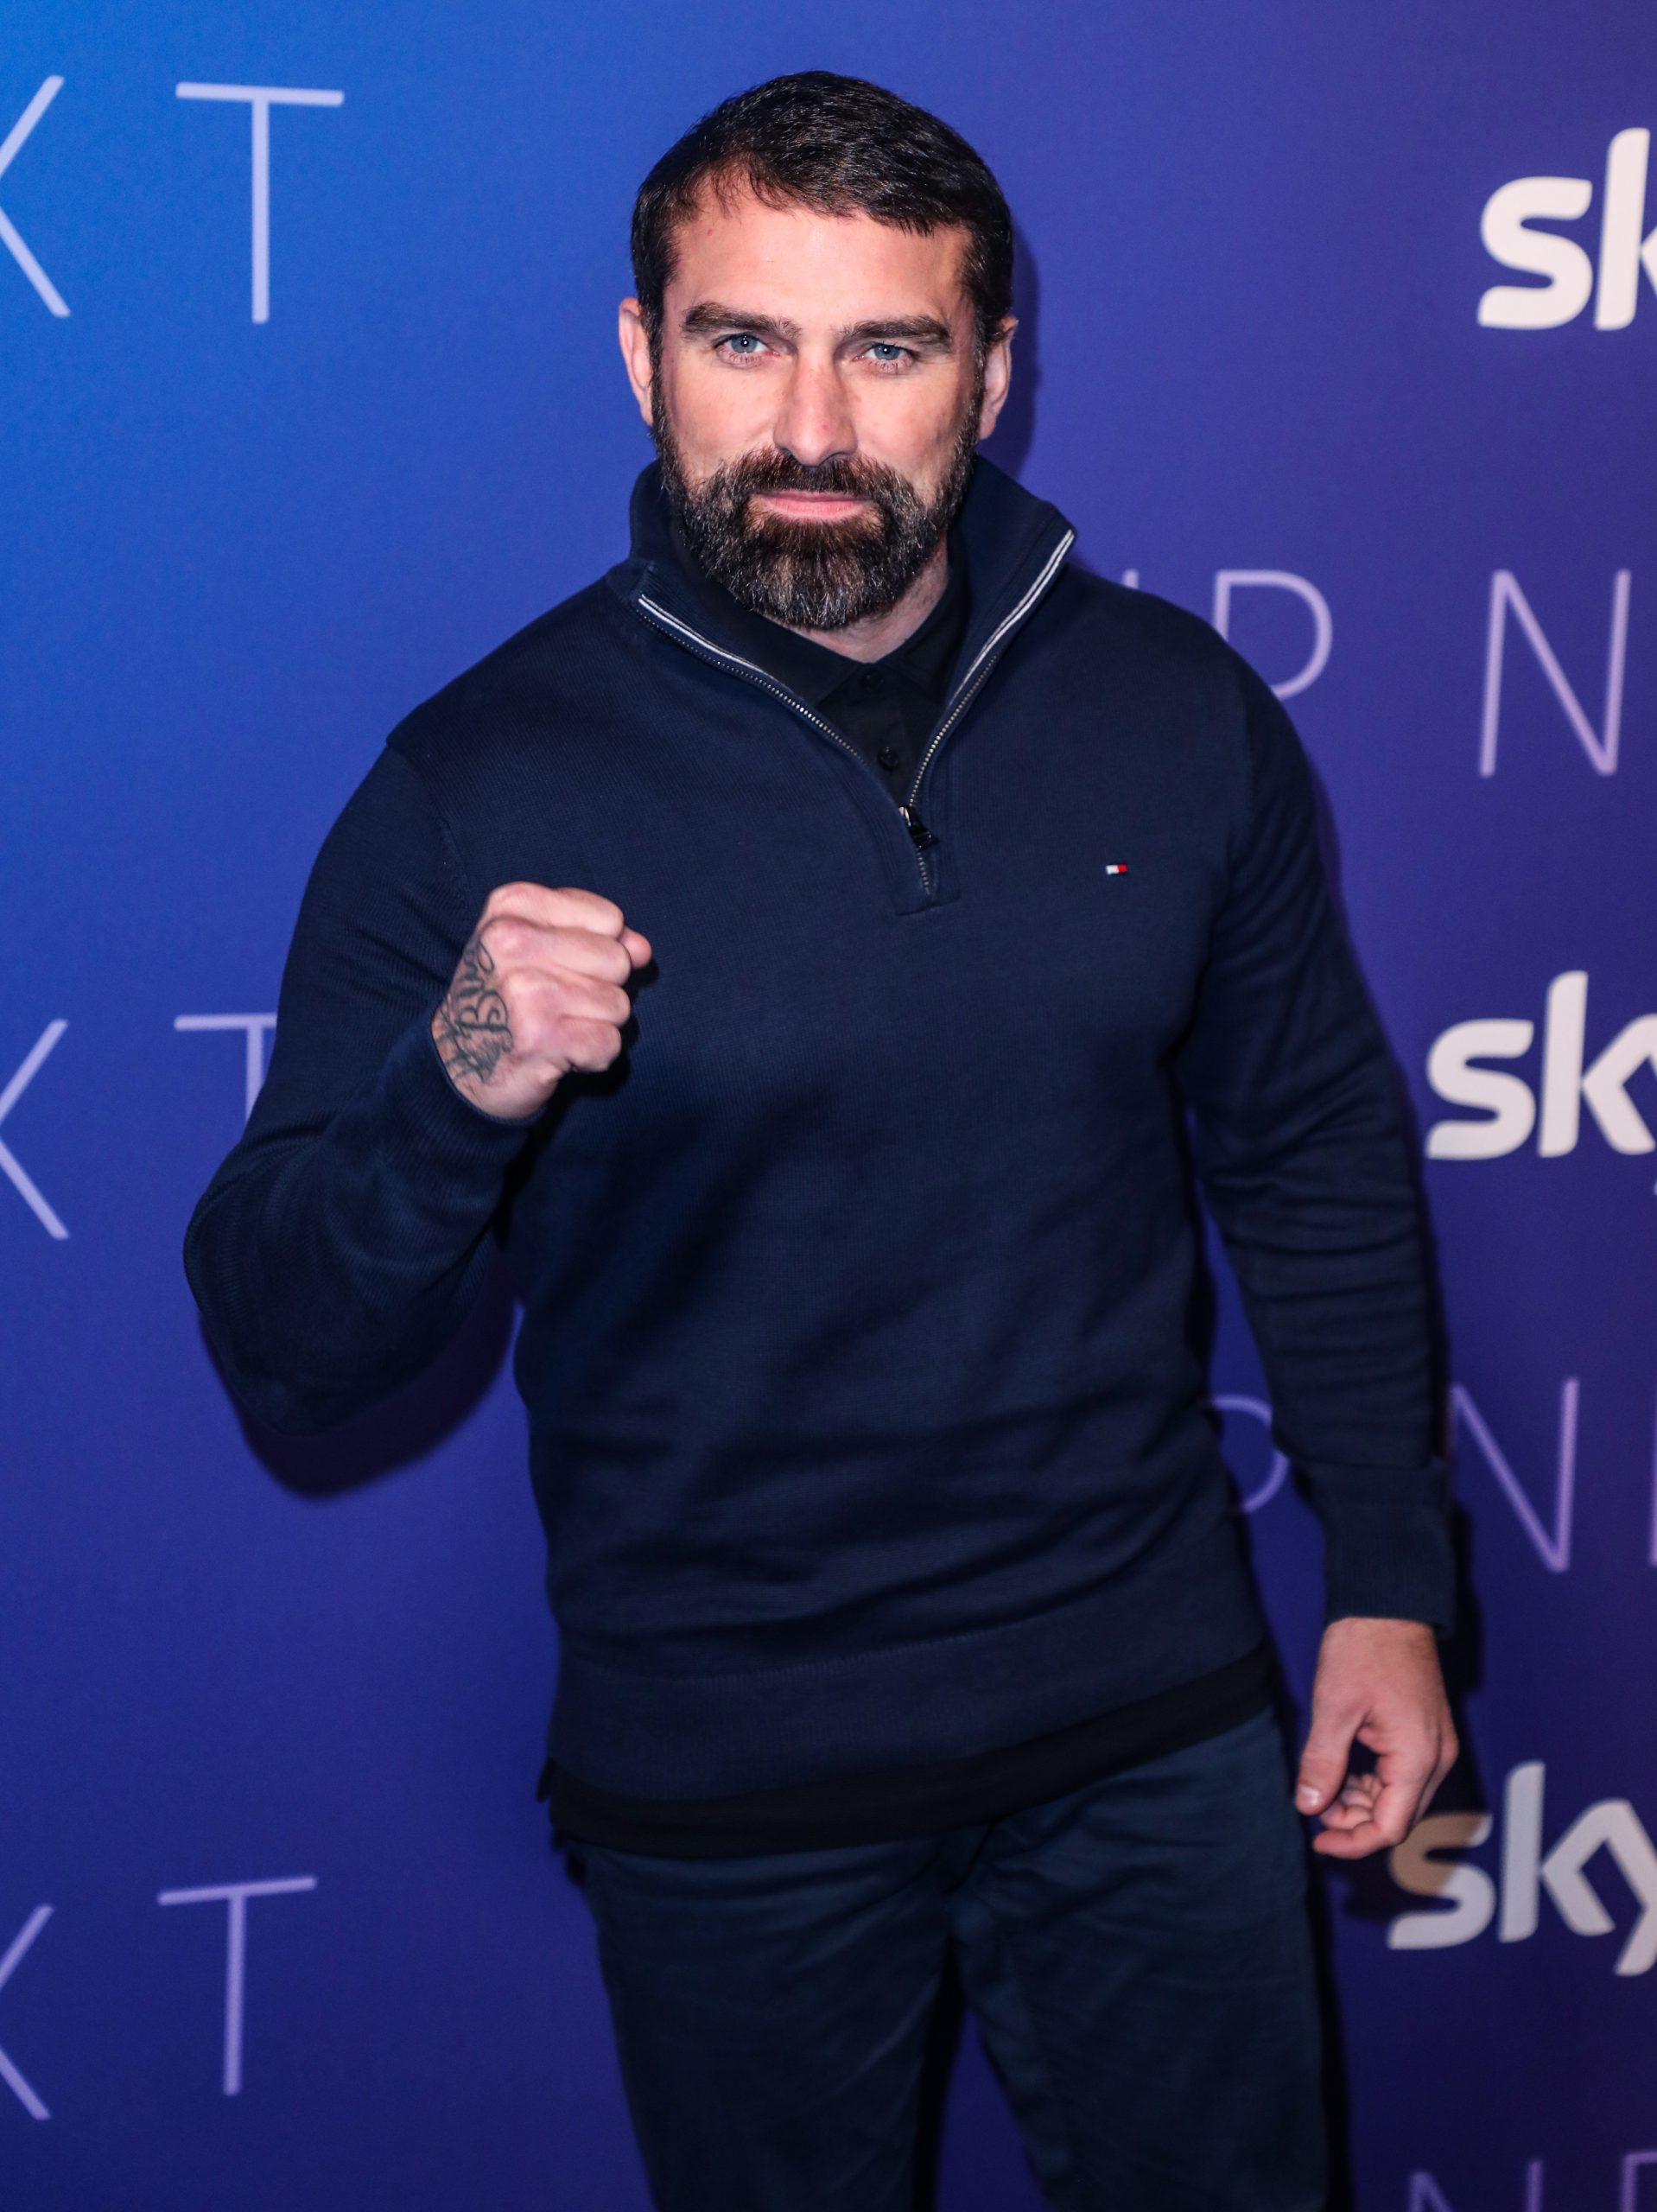 Ant Middleton made his daughter cry by forcing her into a freezing cold swimming pool